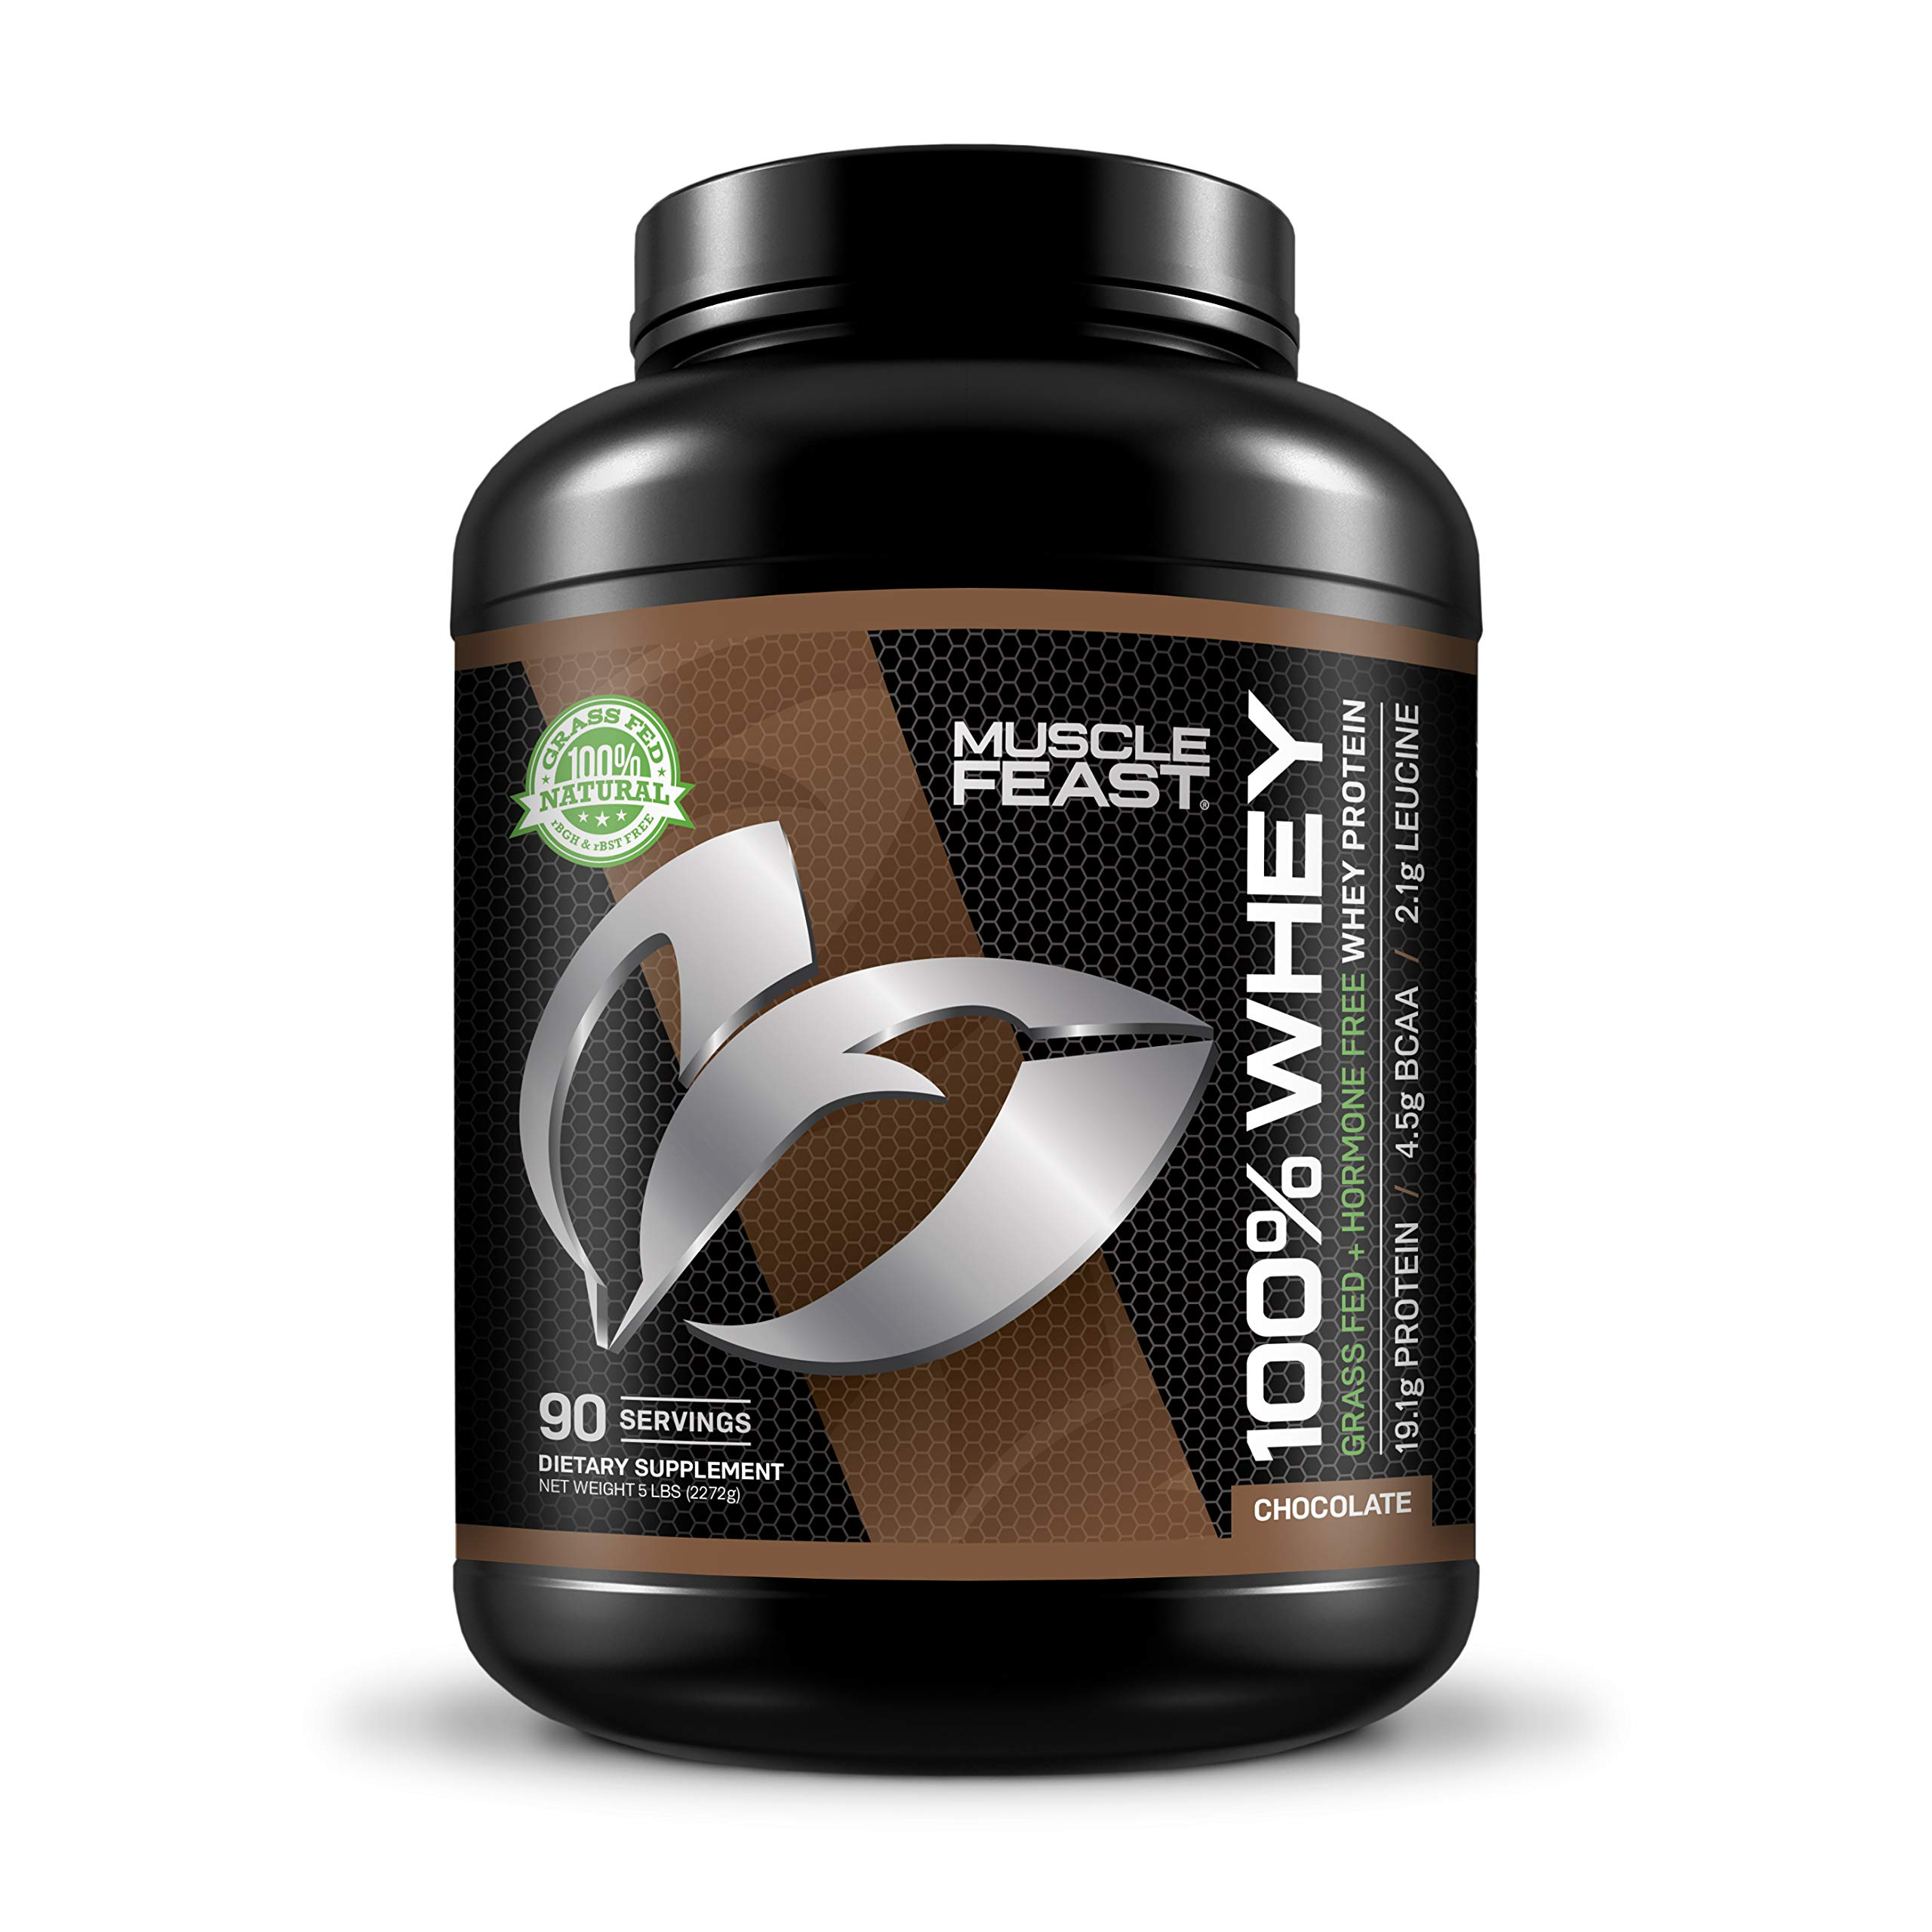 100% Whey Protein | Grass Fed & Hormone Free | Blend of Isolate, Concentrate and Hydrolyzed Whey Protein (5lb, Chocolate)